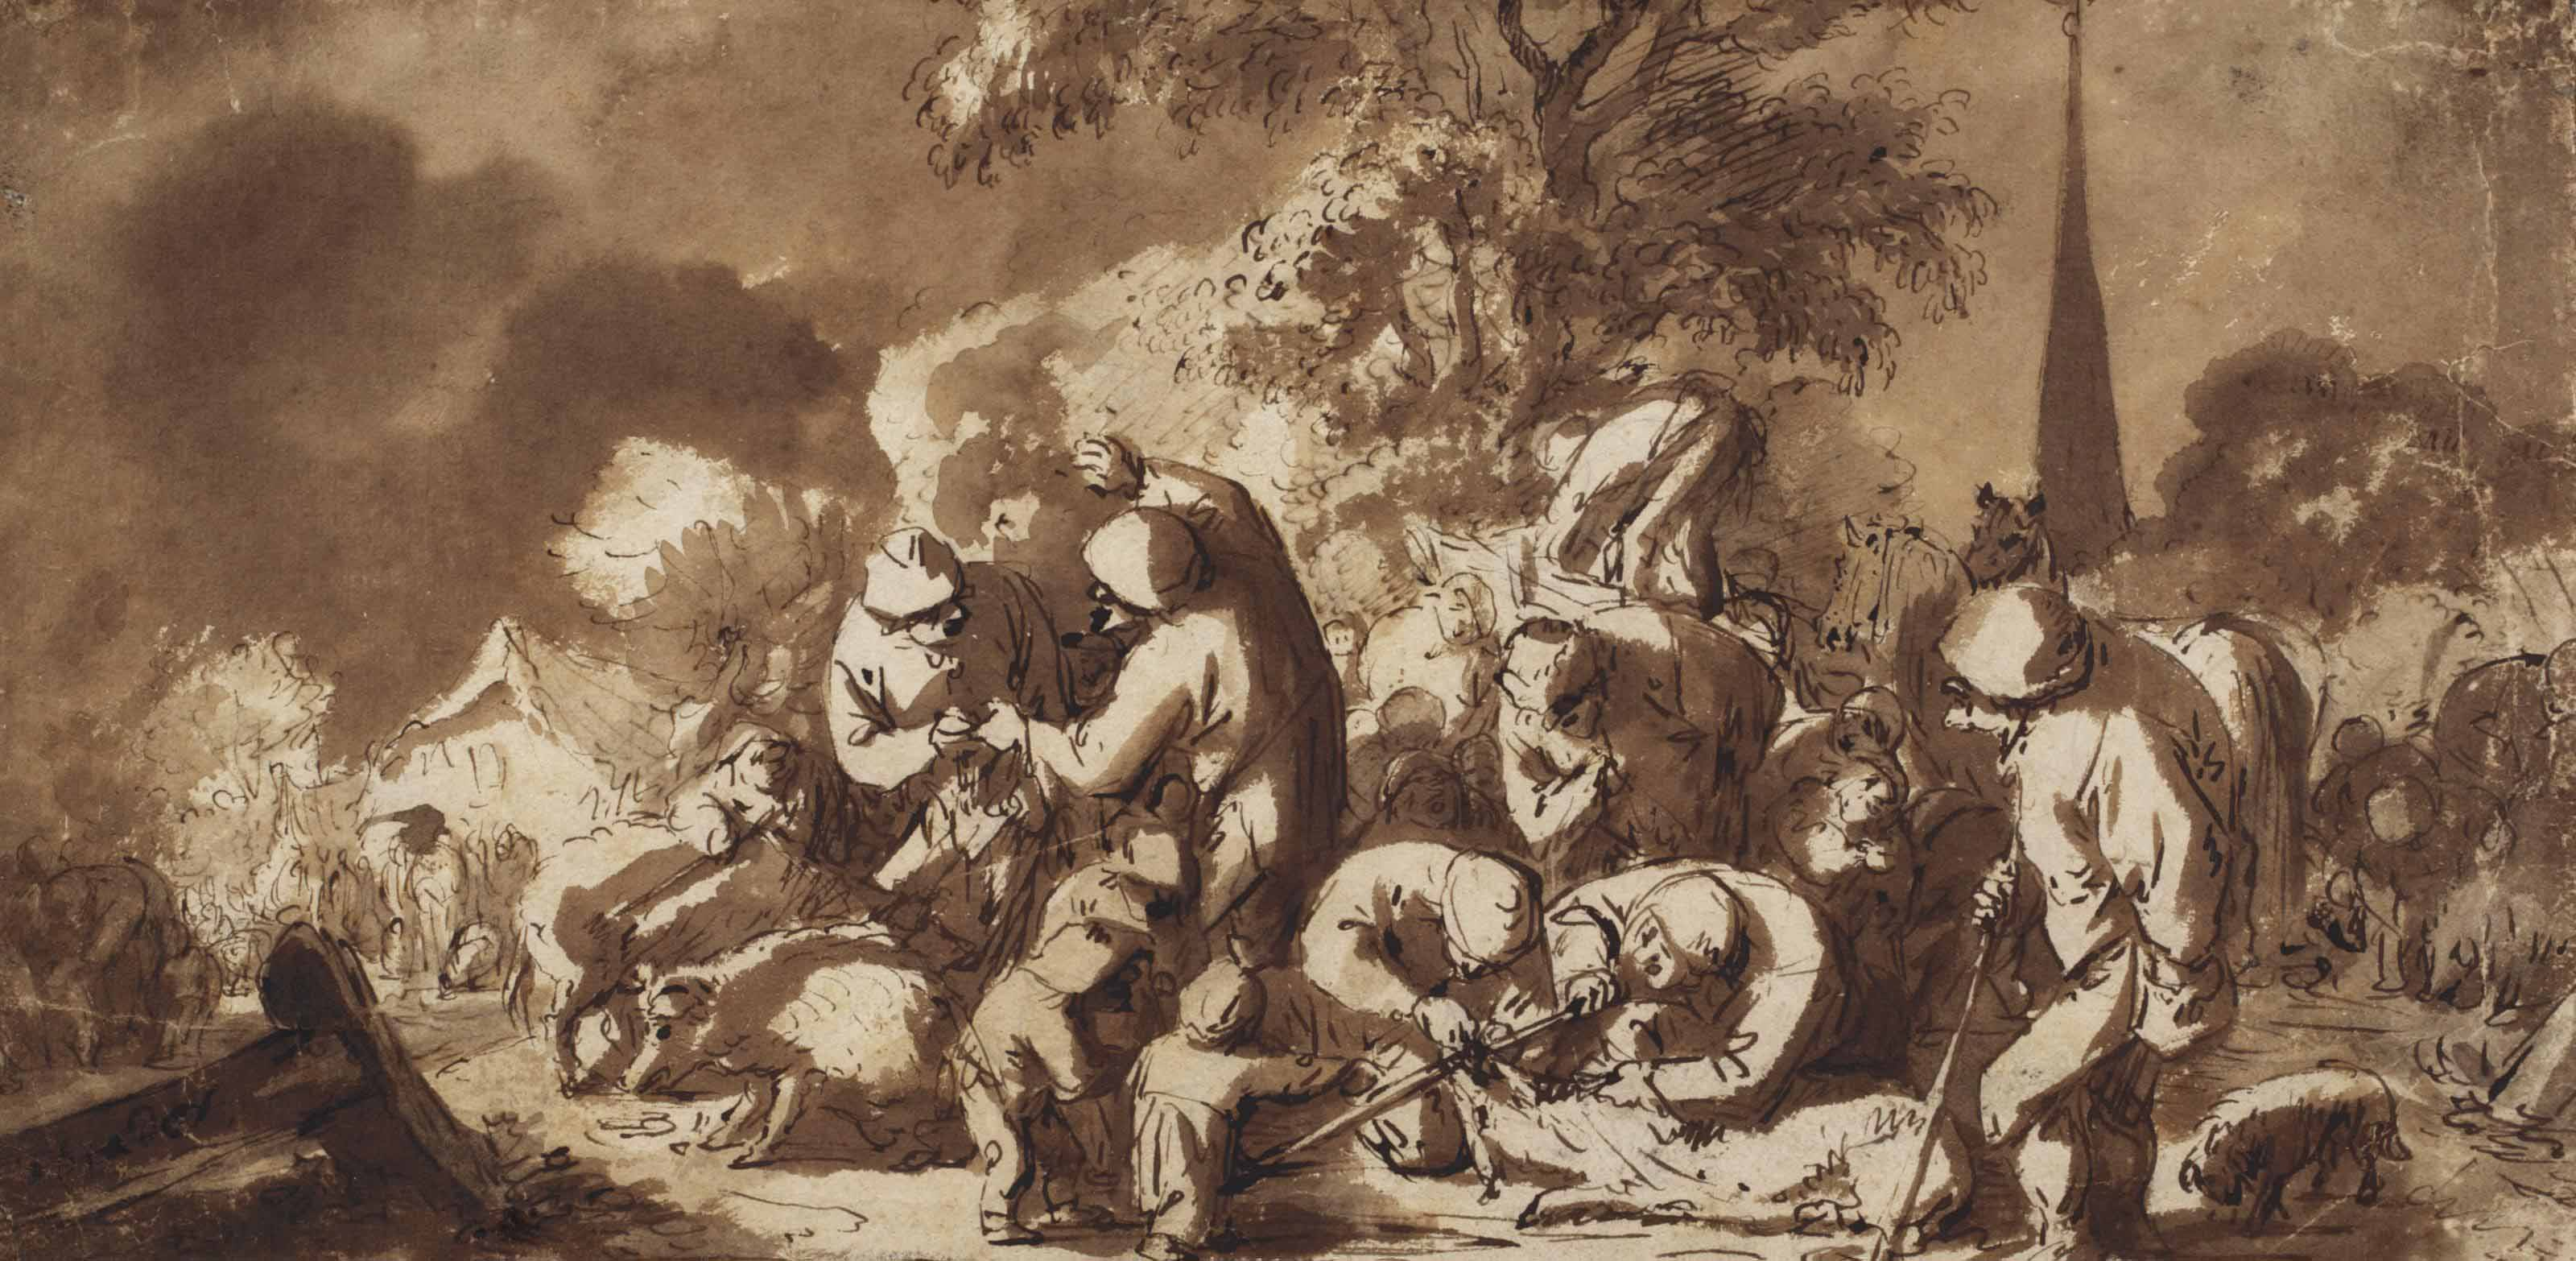 A market scene with the slaughter of a pig